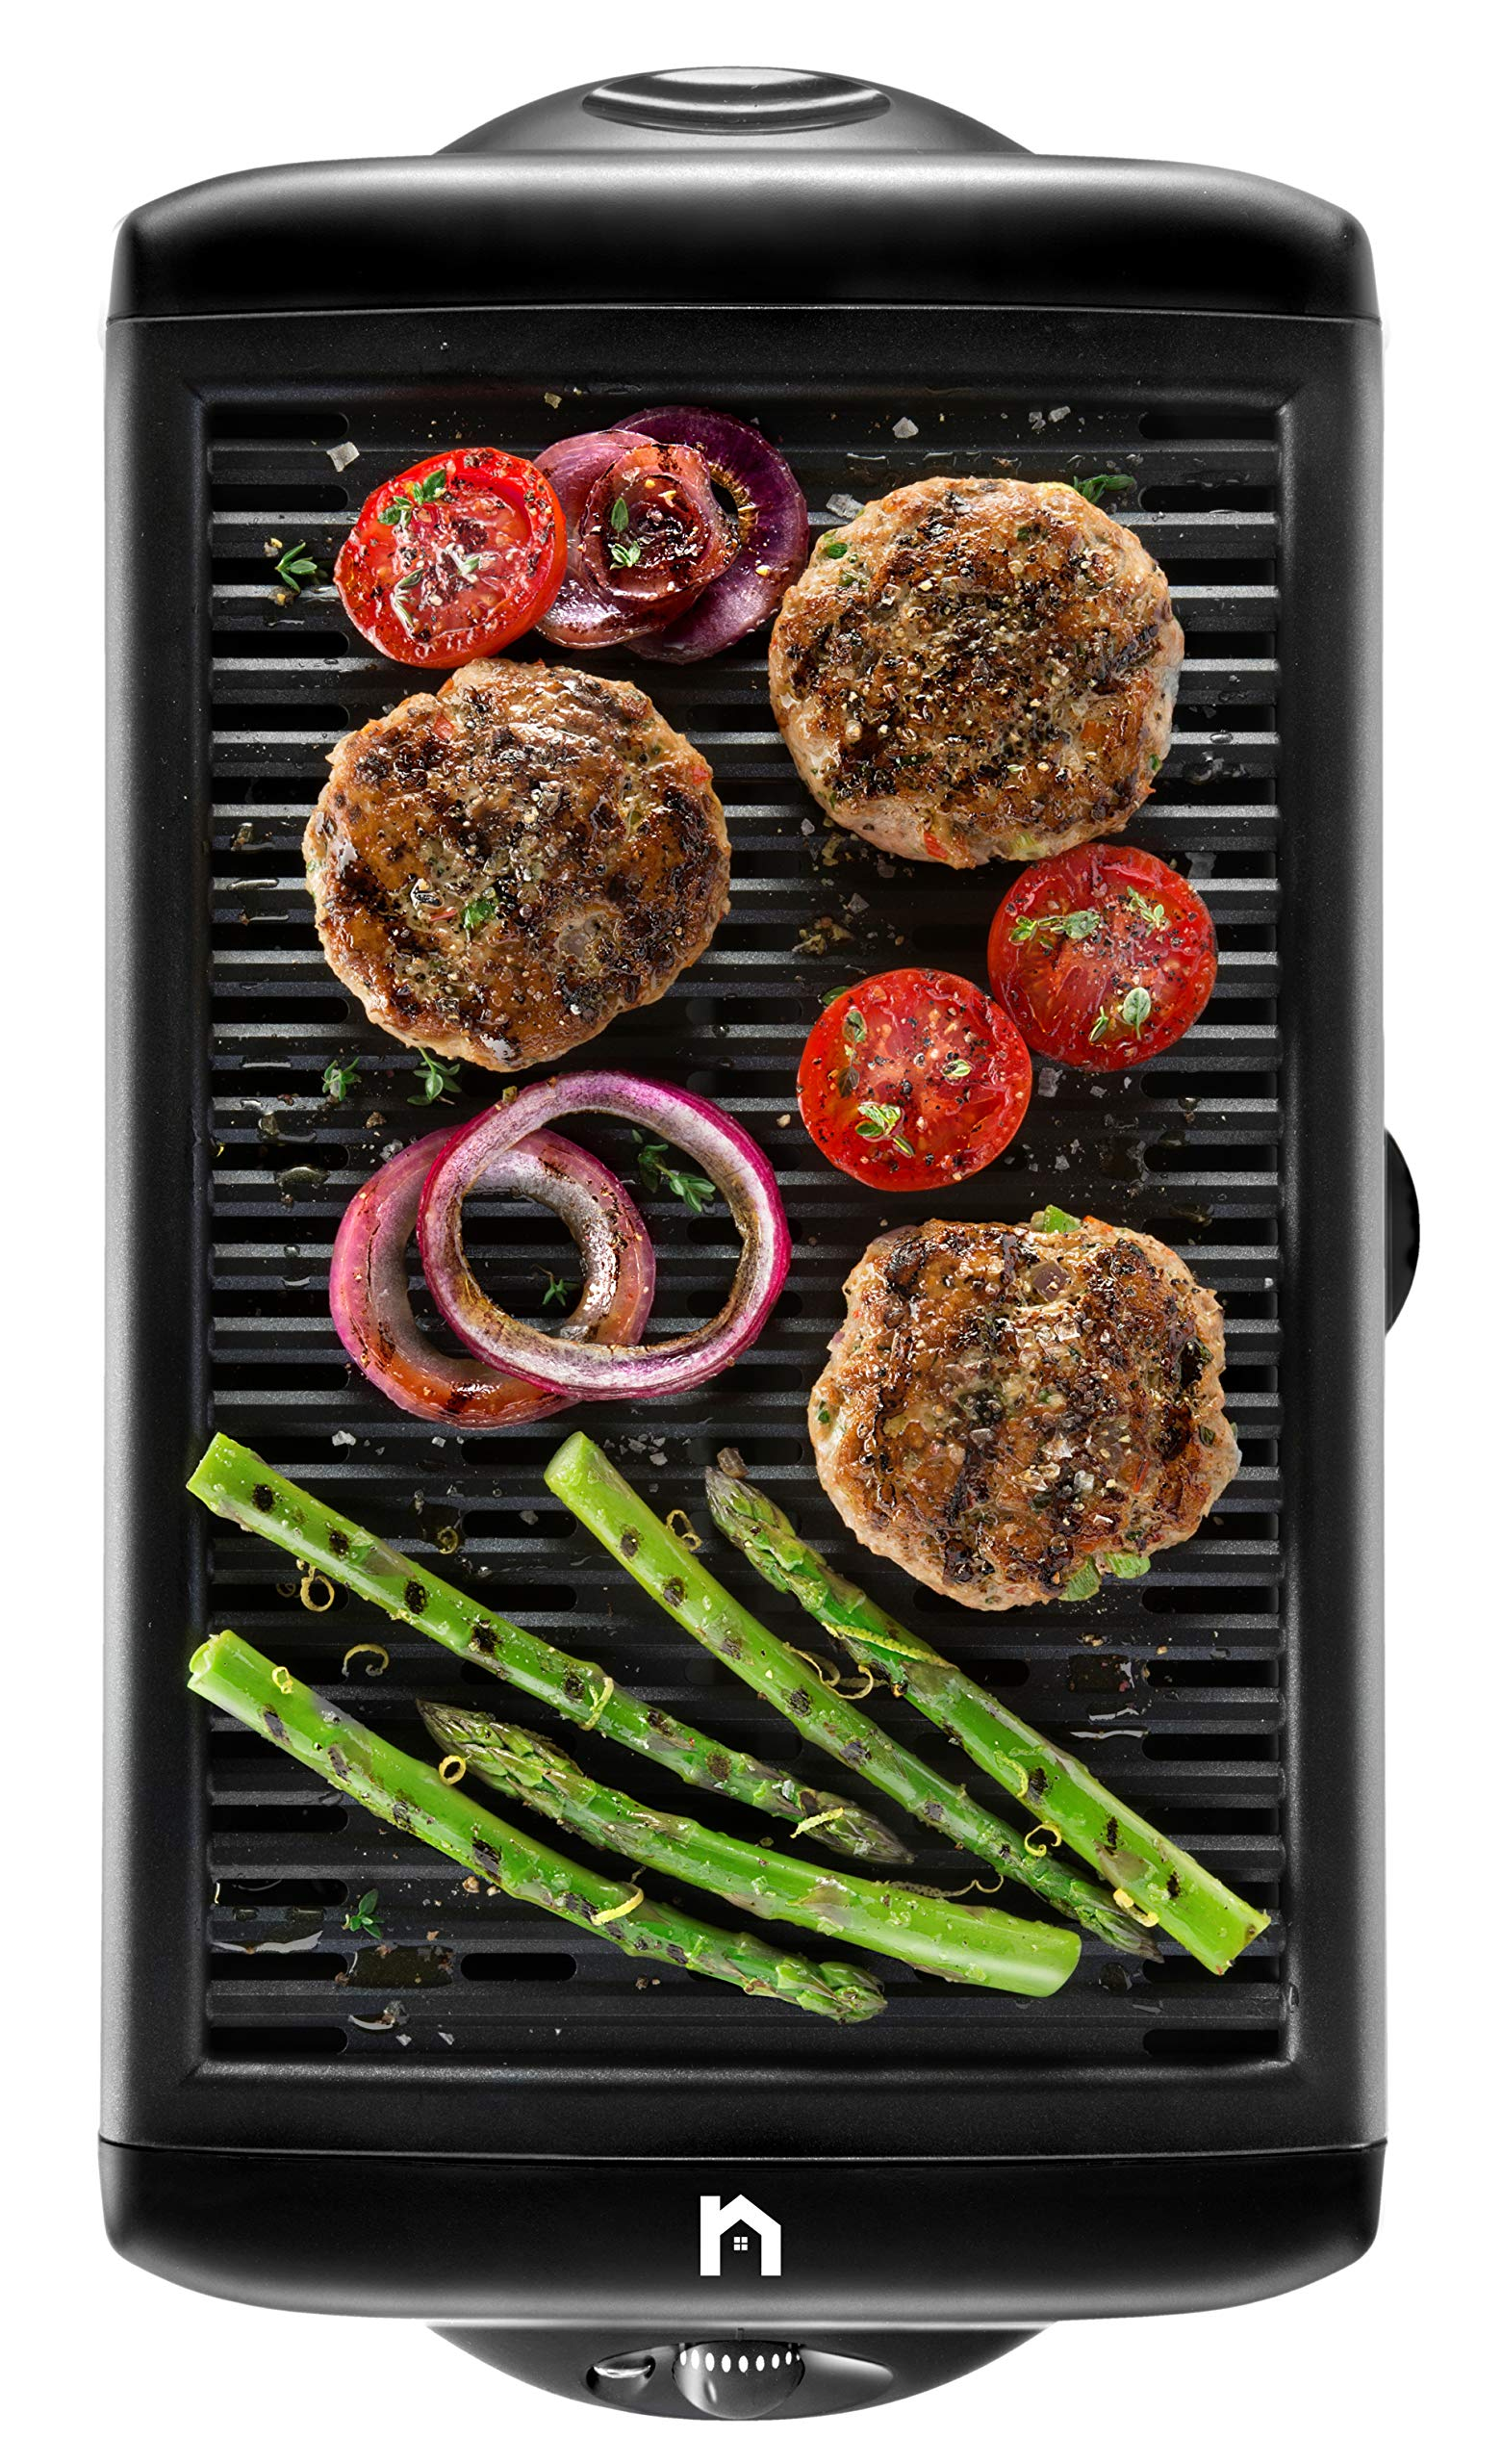 New House Kitchen Electric Smokeless Indoor Grill, Large Non-Stick Cooking Surface, Temperature Control, Dishwasher Safe Removable Drip Tray, Portable Kitchen BBQ-Grill, Black